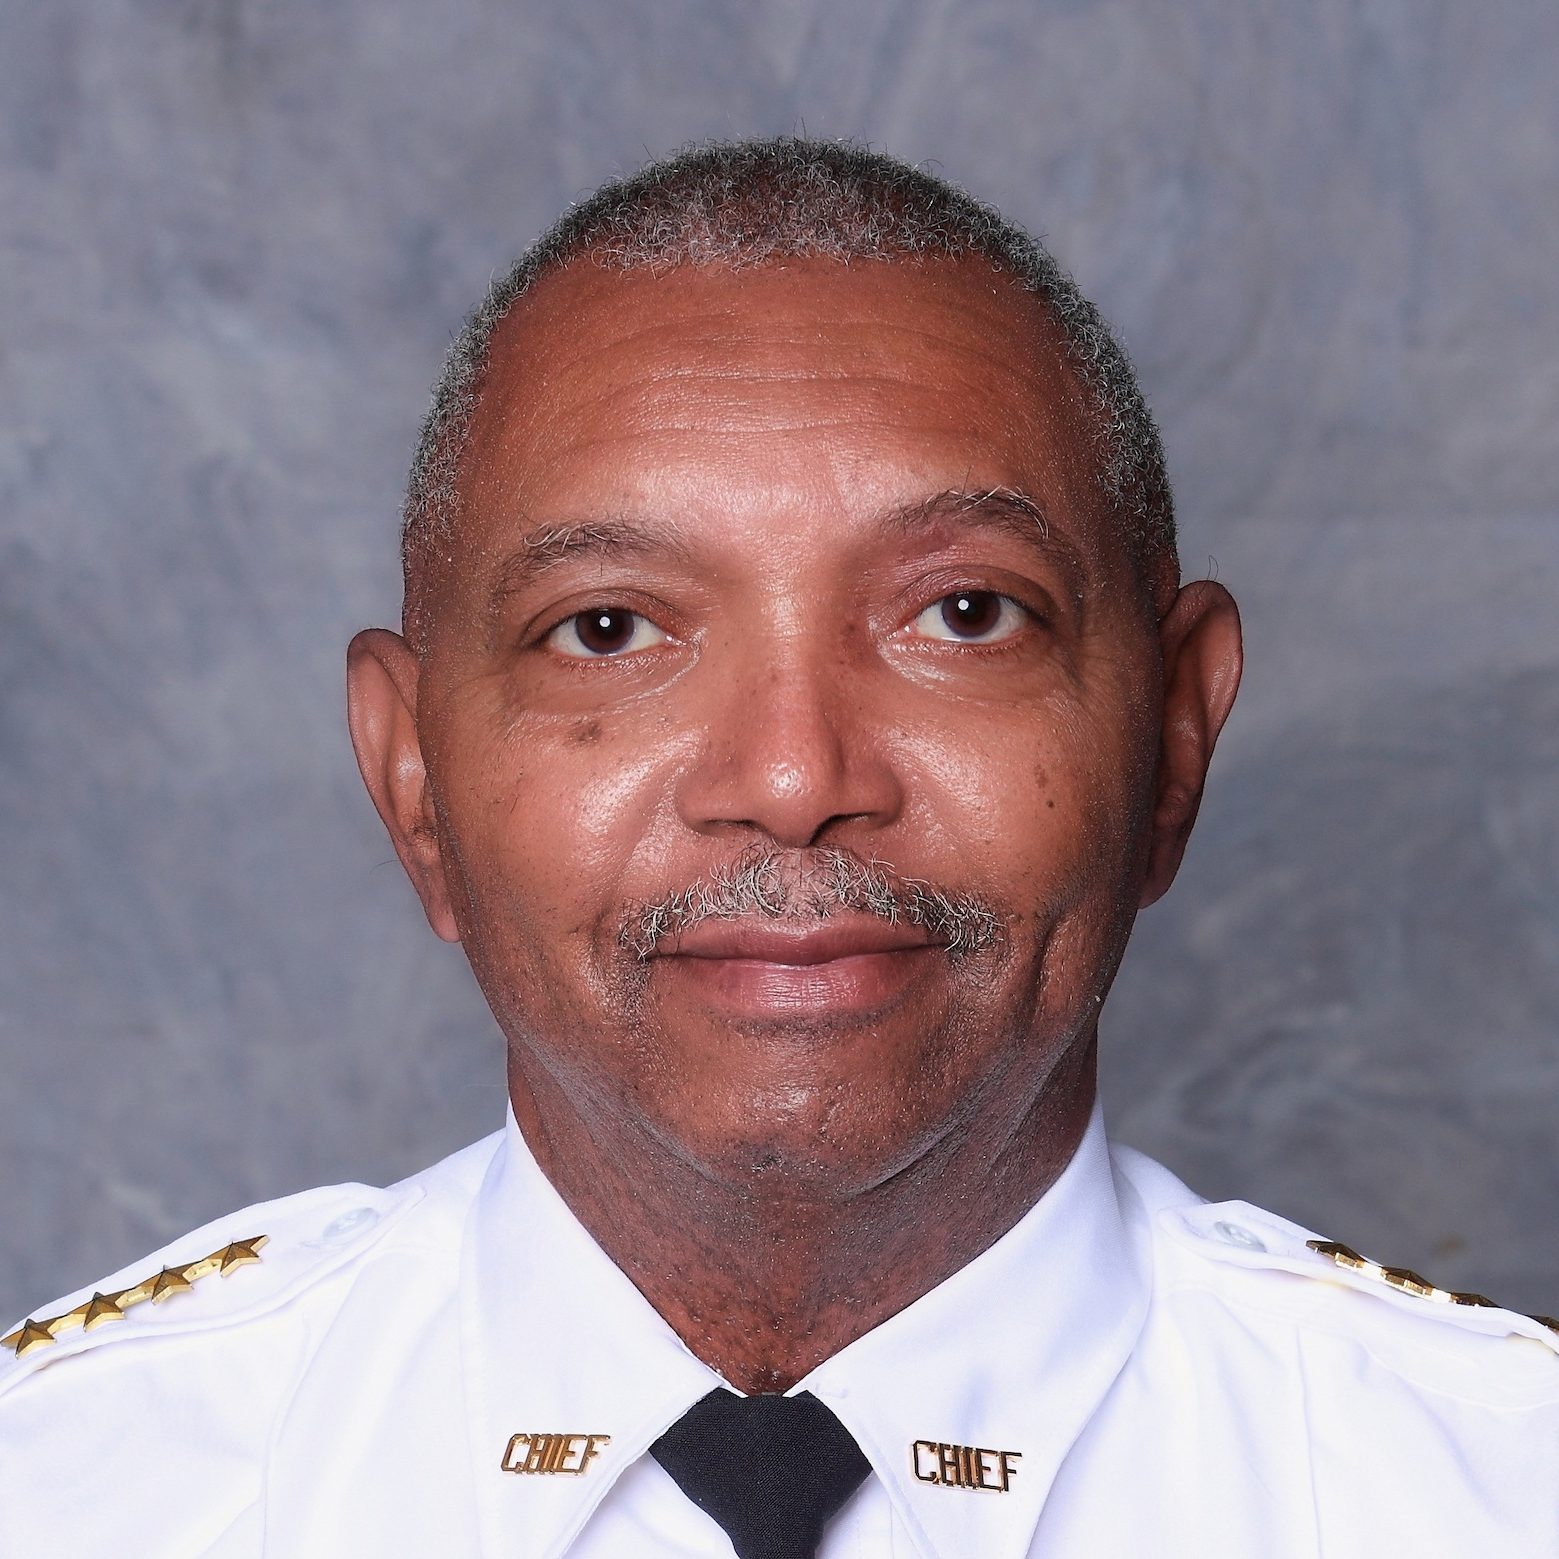 Campus Chief of Police & Public Safety